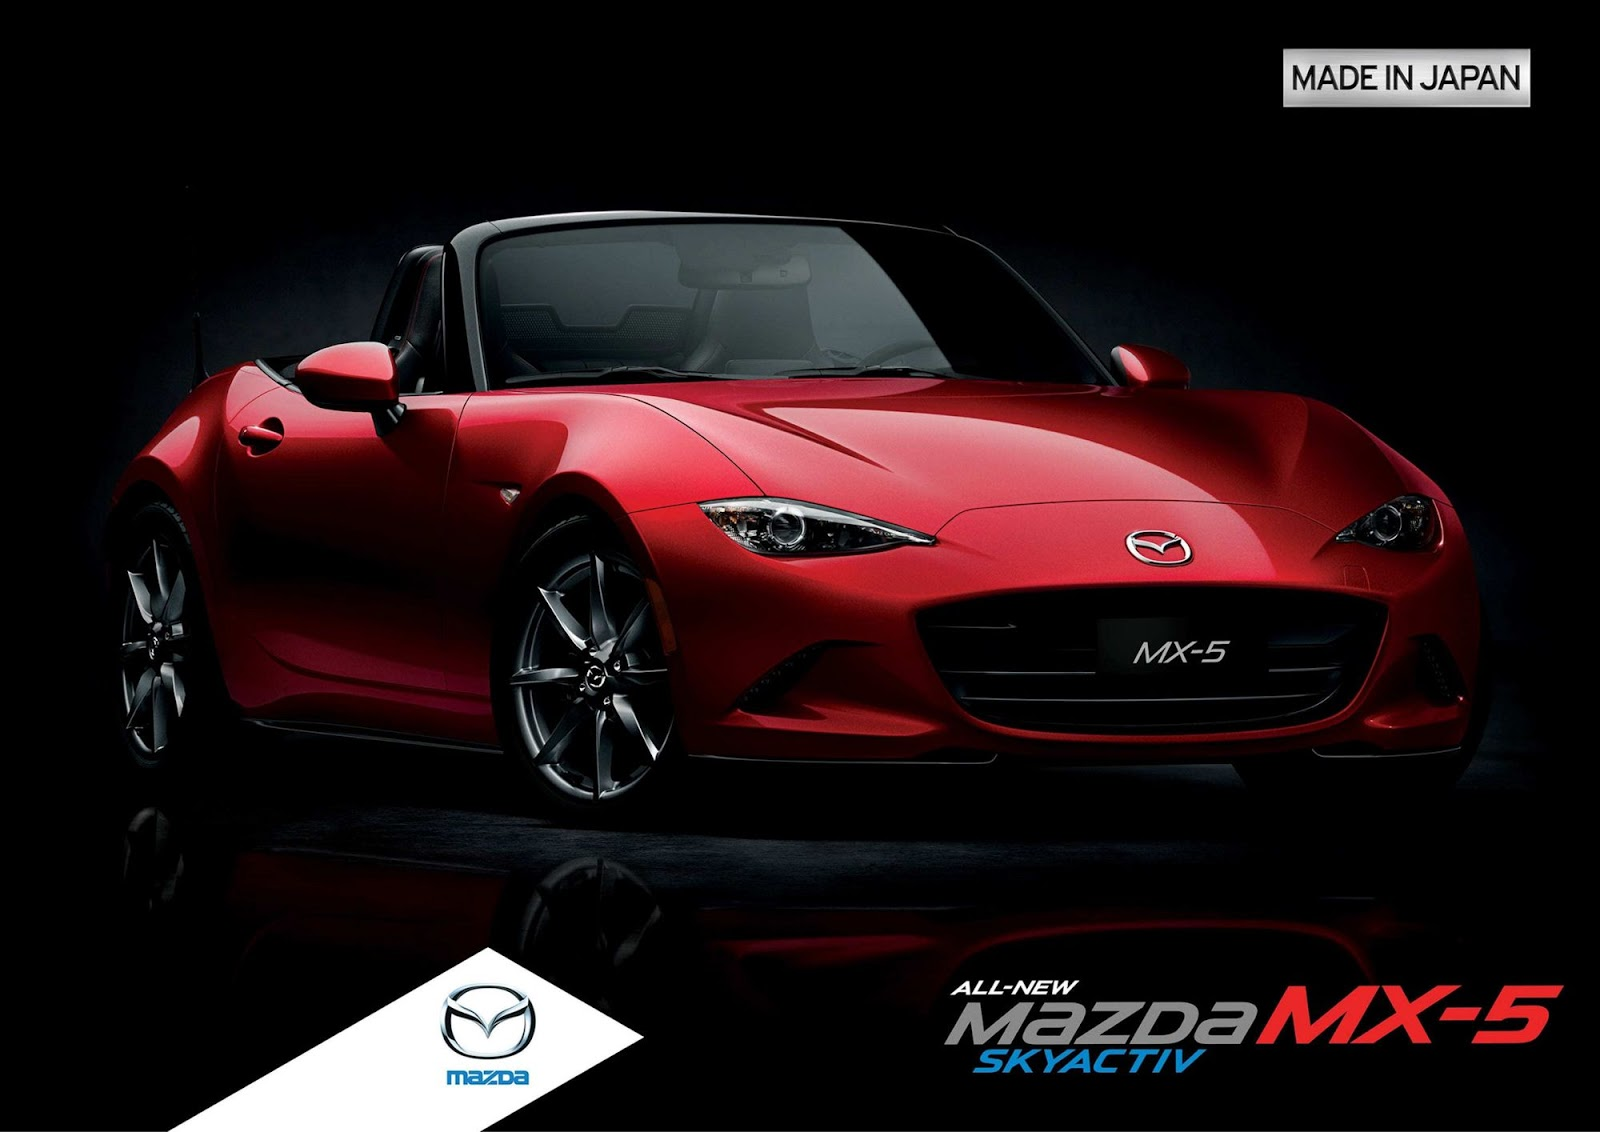 this is your 2016 mazda mx 5 brochure philippine car news car reviews automotive features. Black Bedroom Furniture Sets. Home Design Ideas